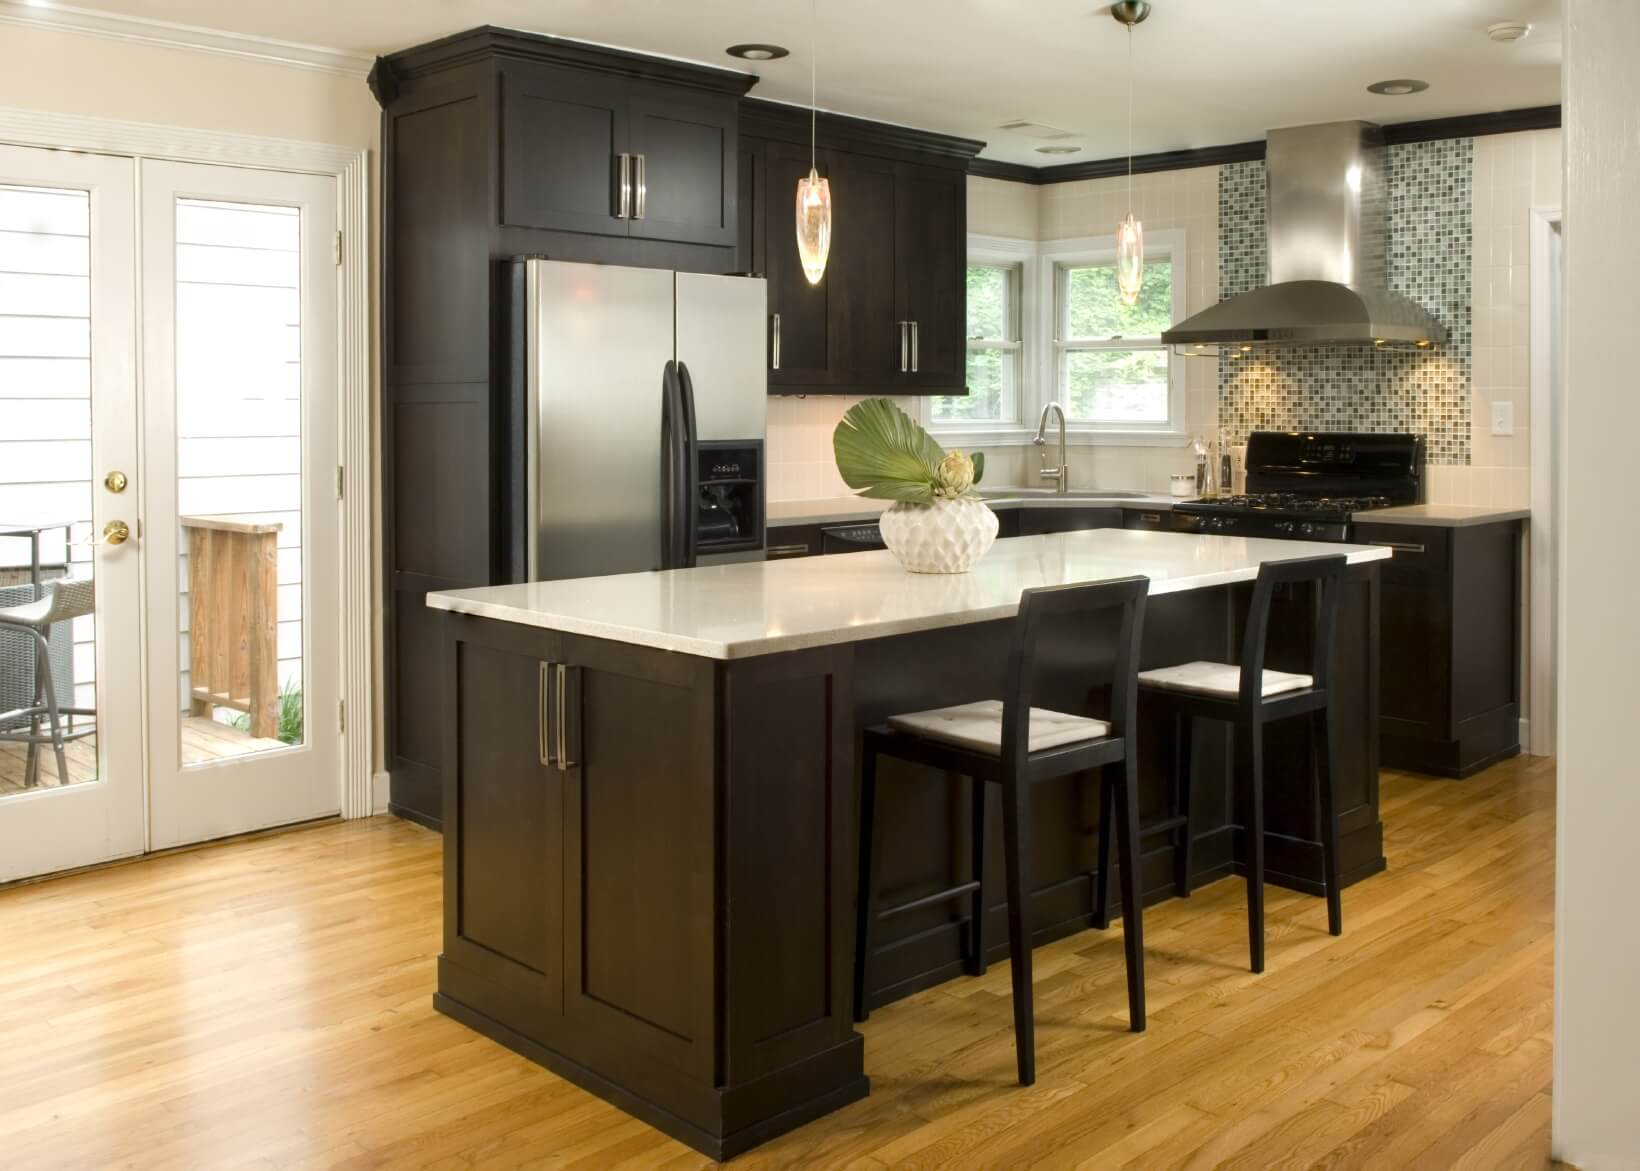 RTA Kitchen Cabinets: Why You should Use Them in Your Kitchen - Interior Design, Design News and ...